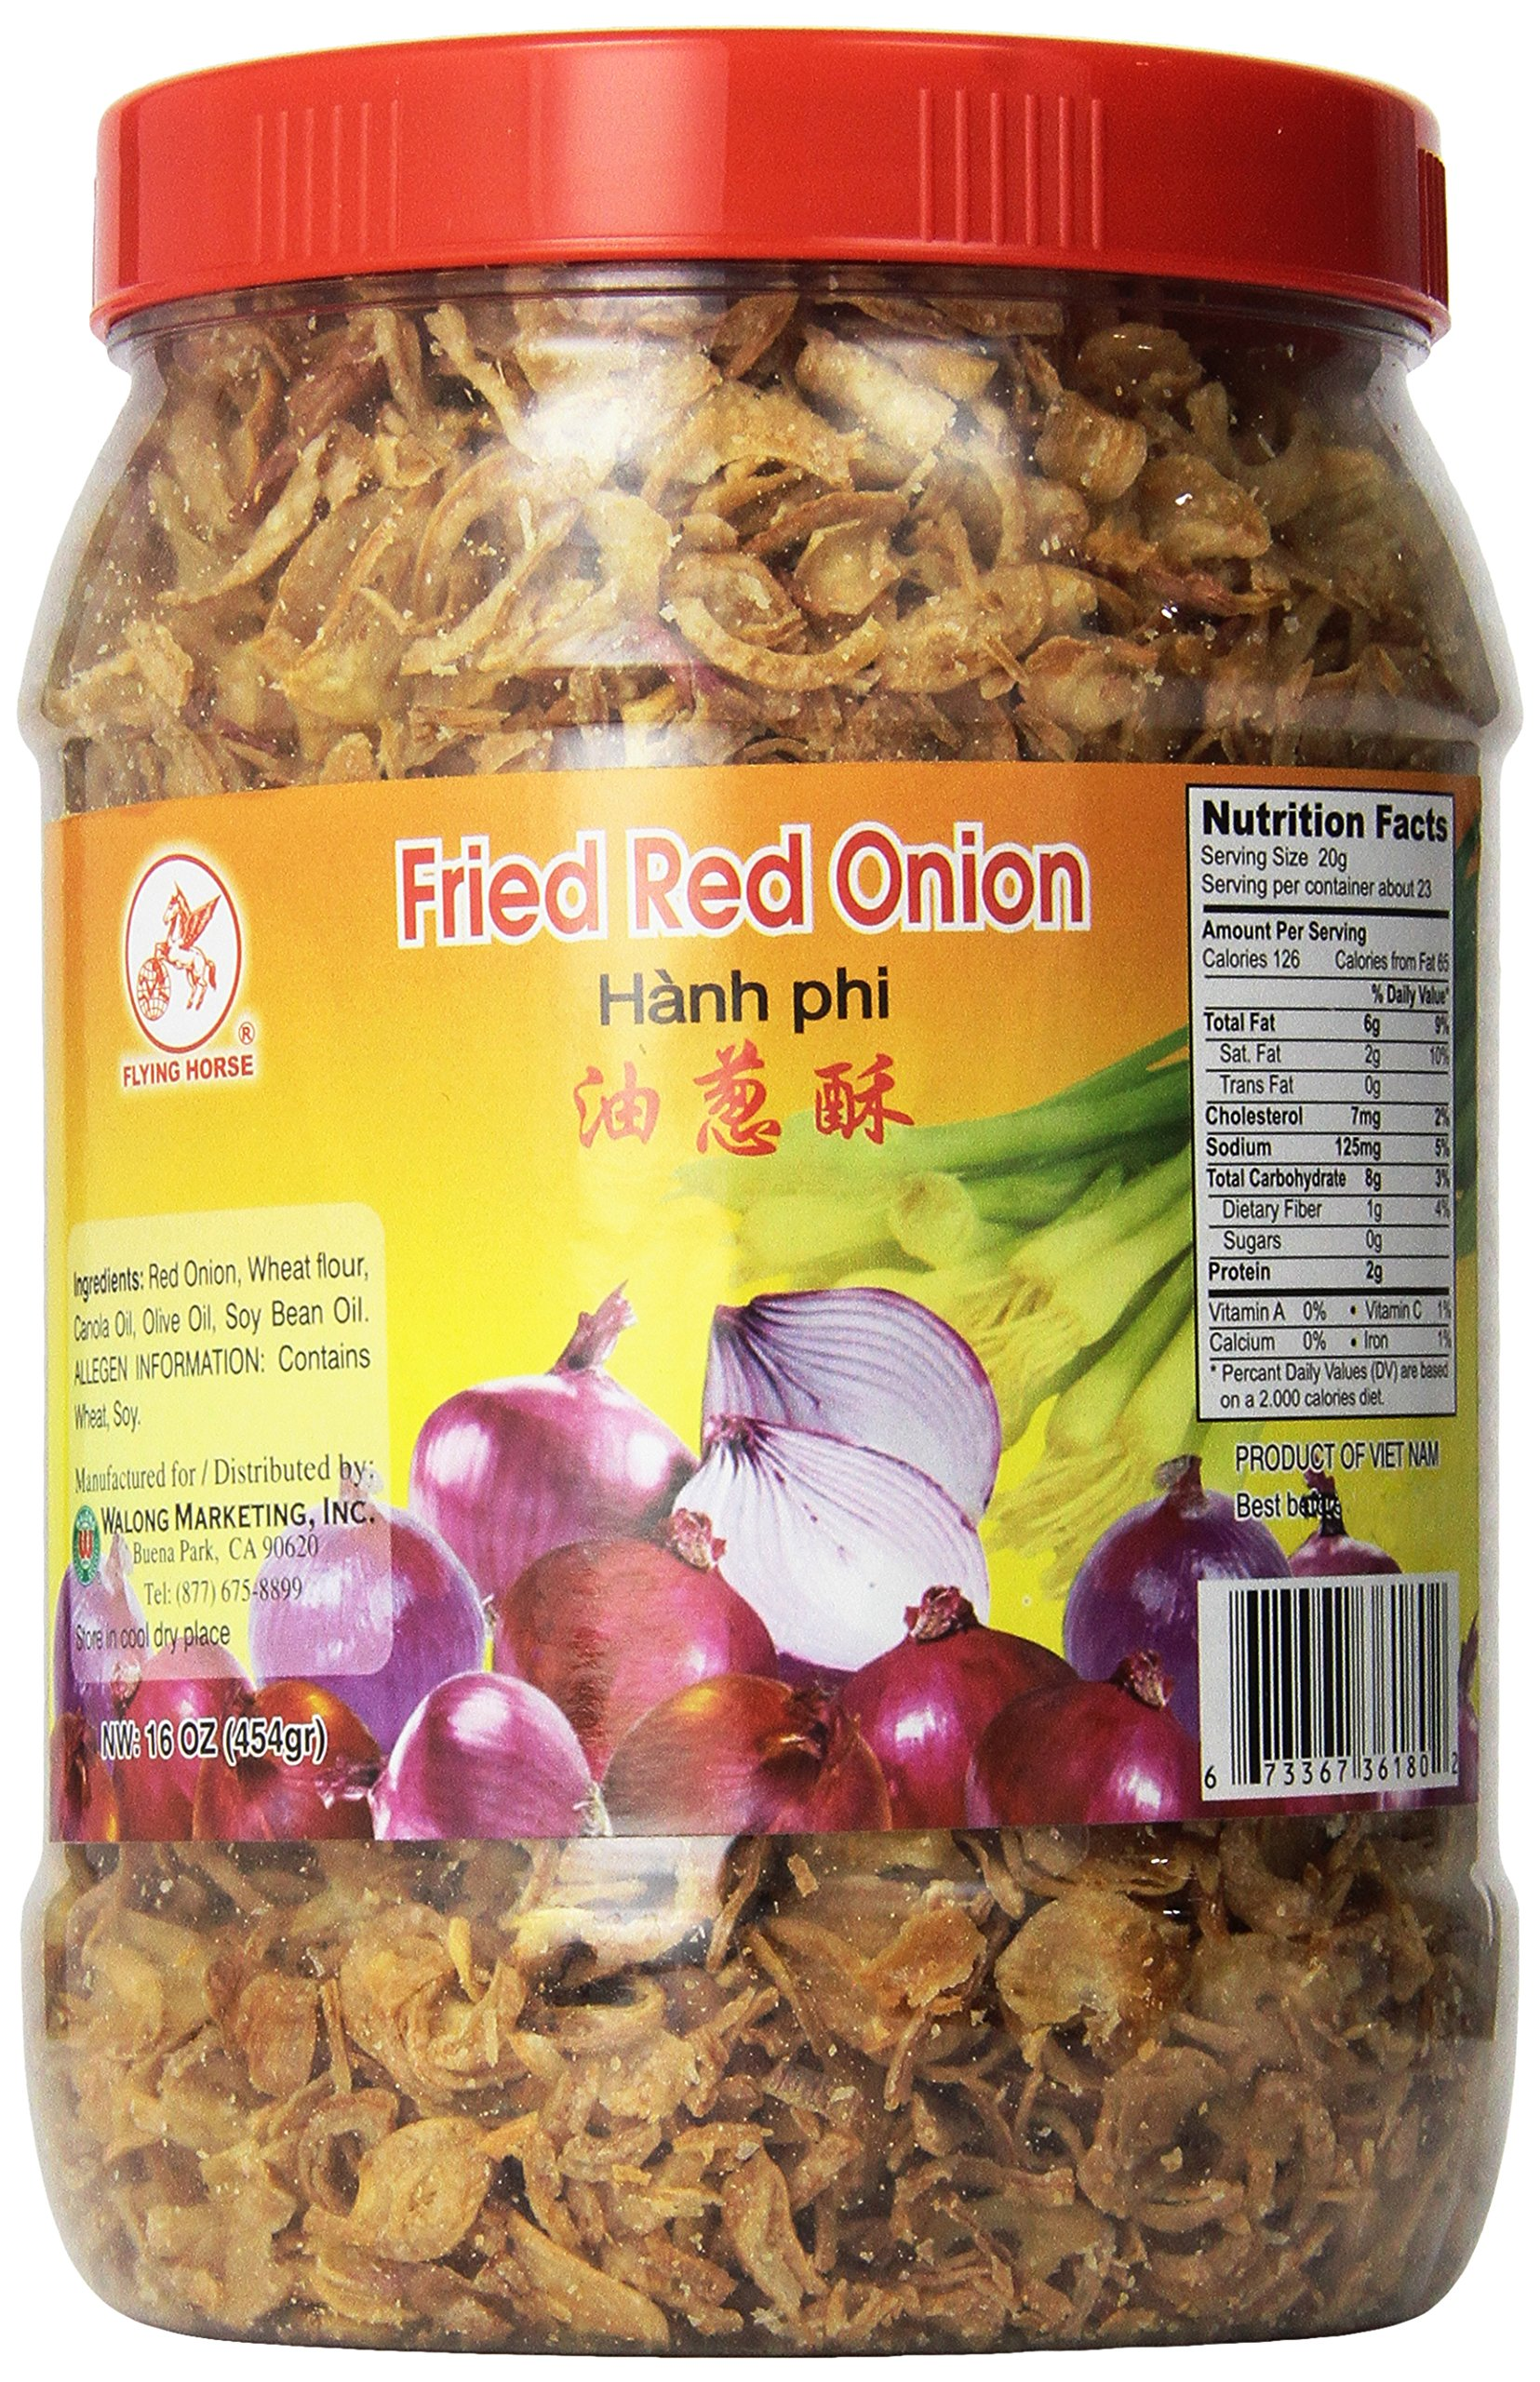 16 OZ Fried Red Onion (Hanh phi)